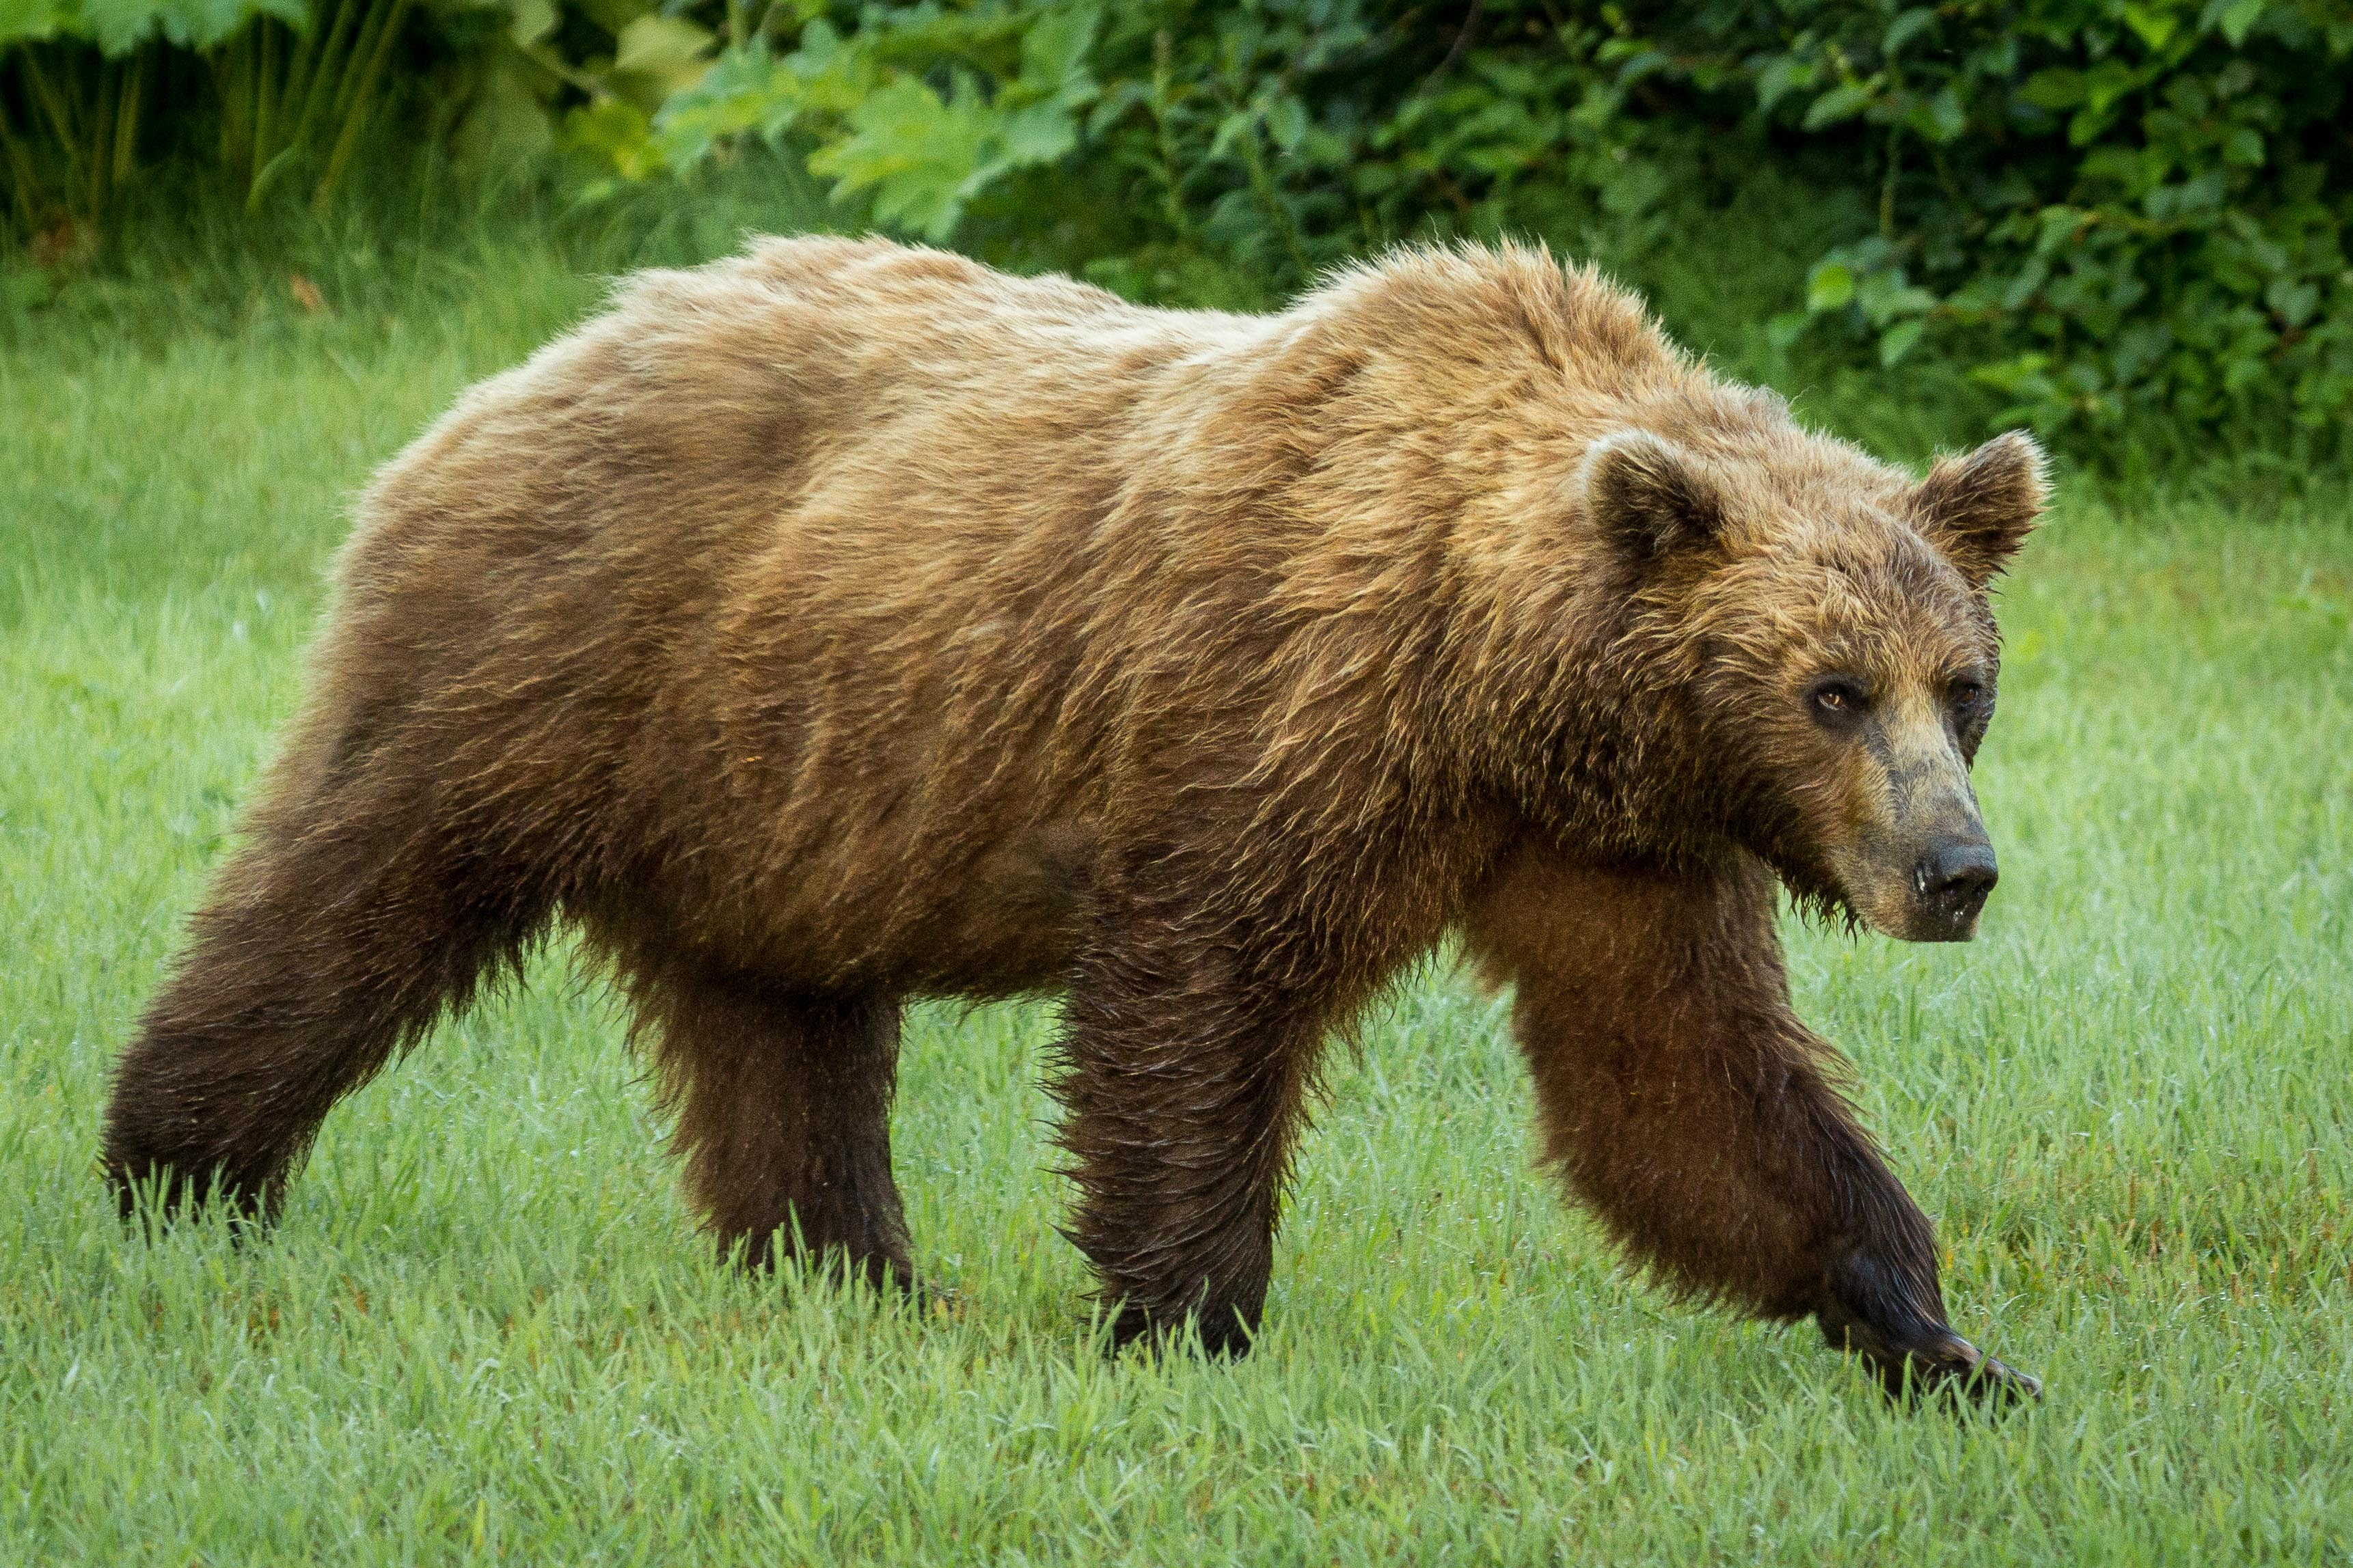 Grizzly bear walking - photo#14